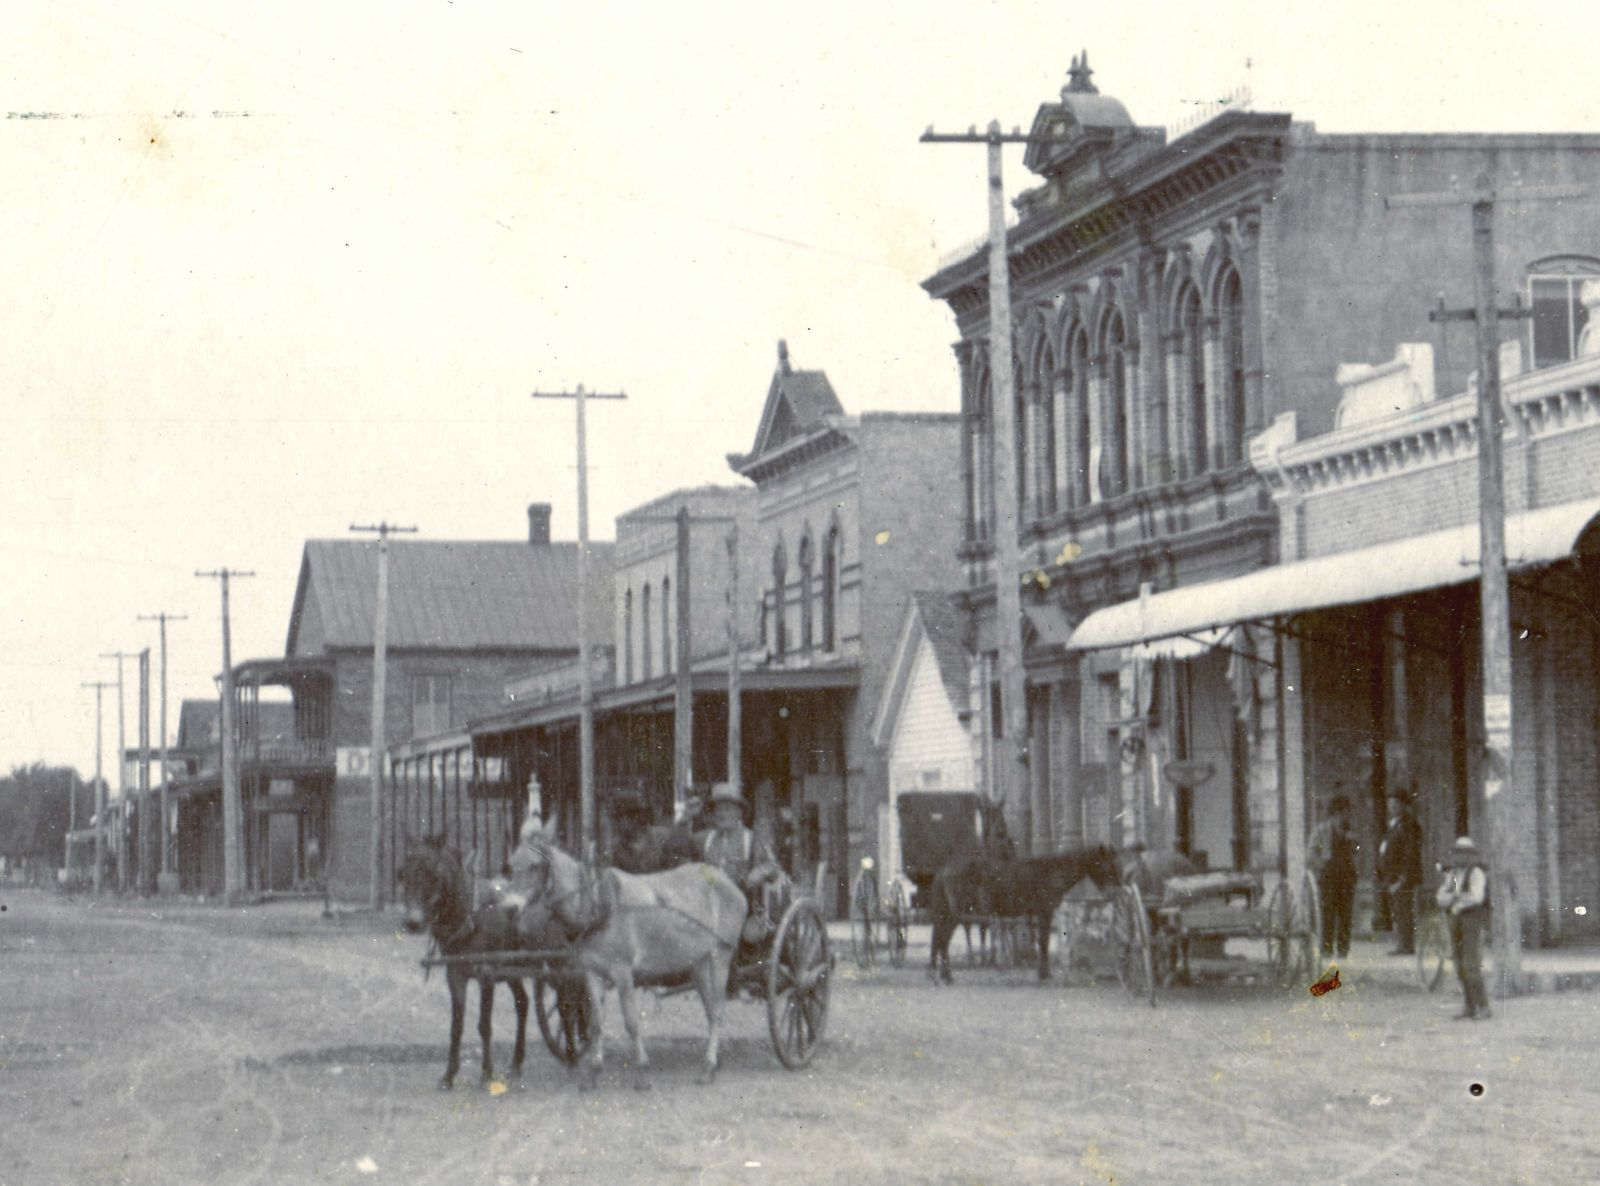 first national bank and main street